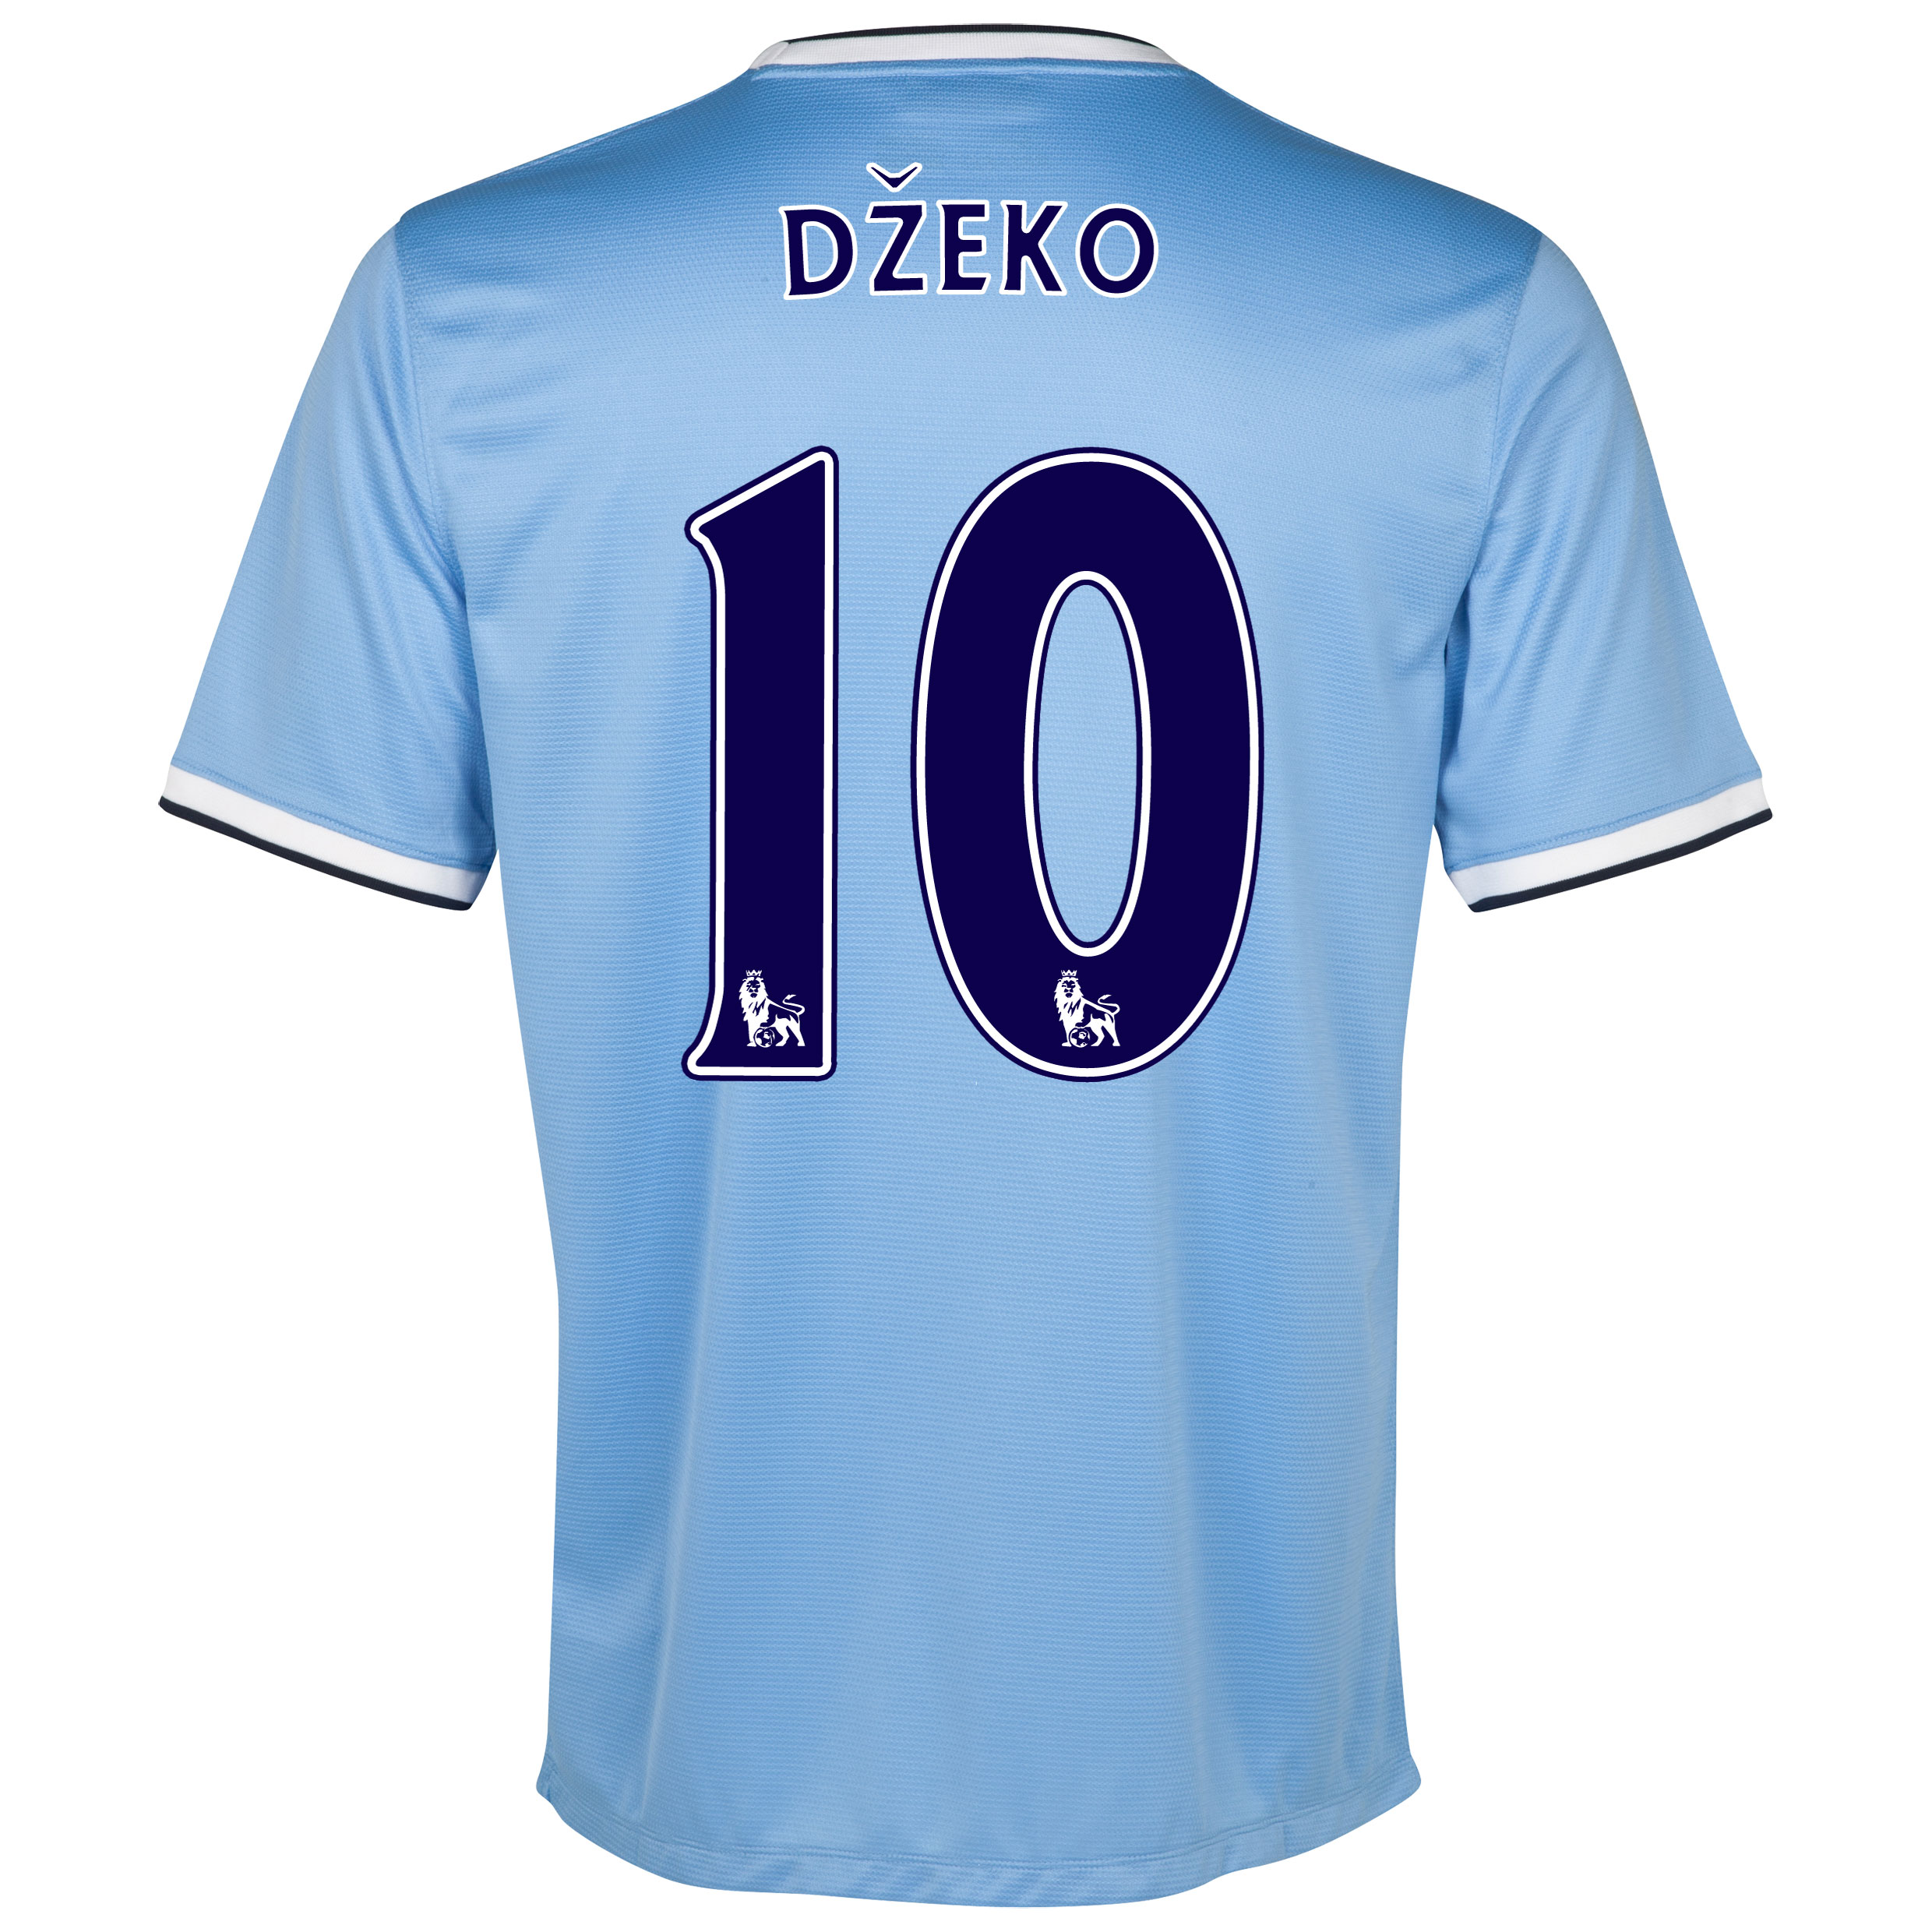 Dzeko hero shirts